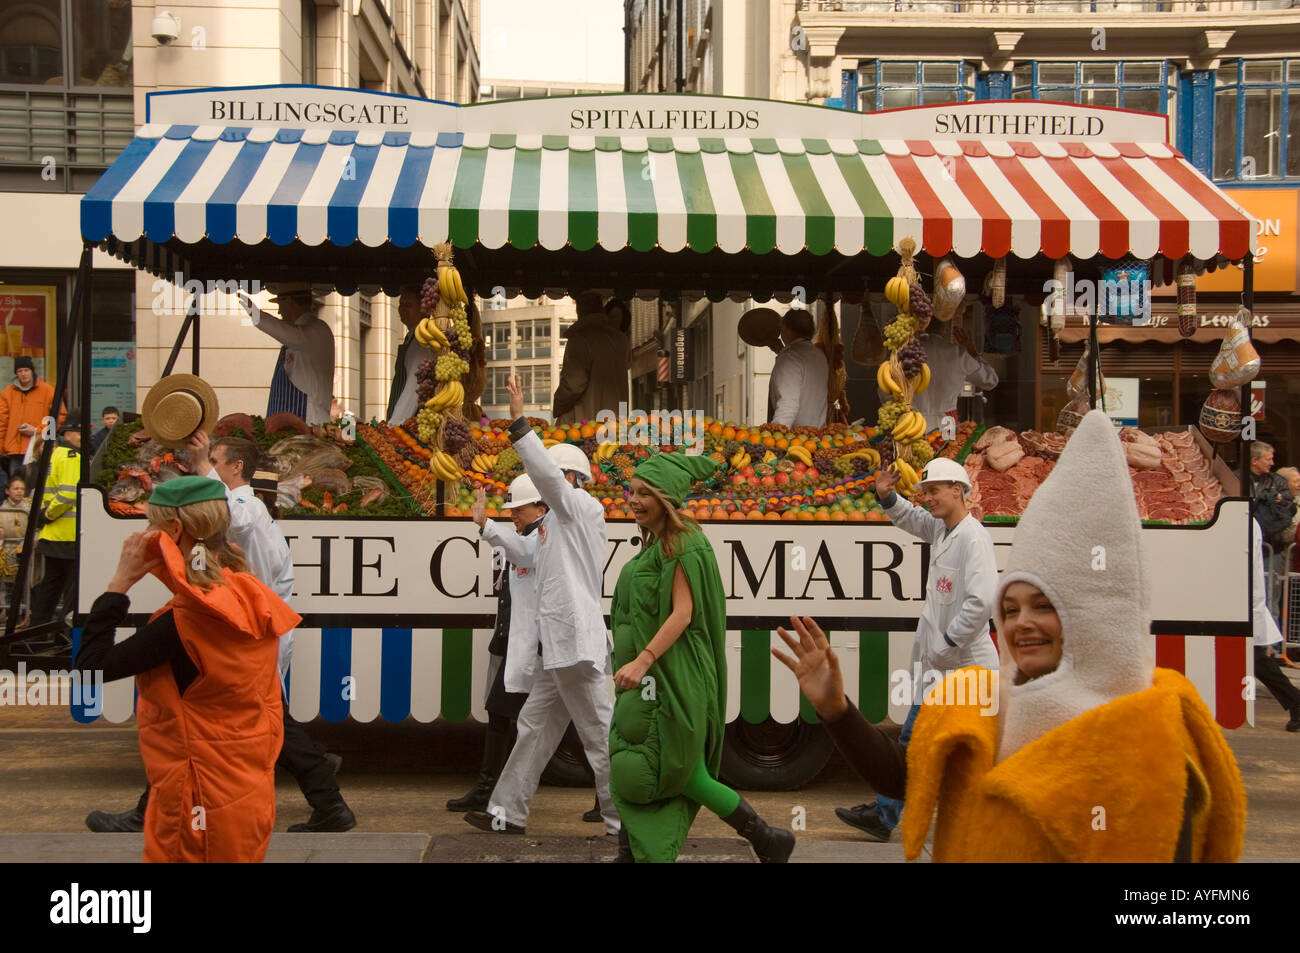 The City Markets in the procession at the Lord Mayors Show in the City of London November 2006 - Stock Image